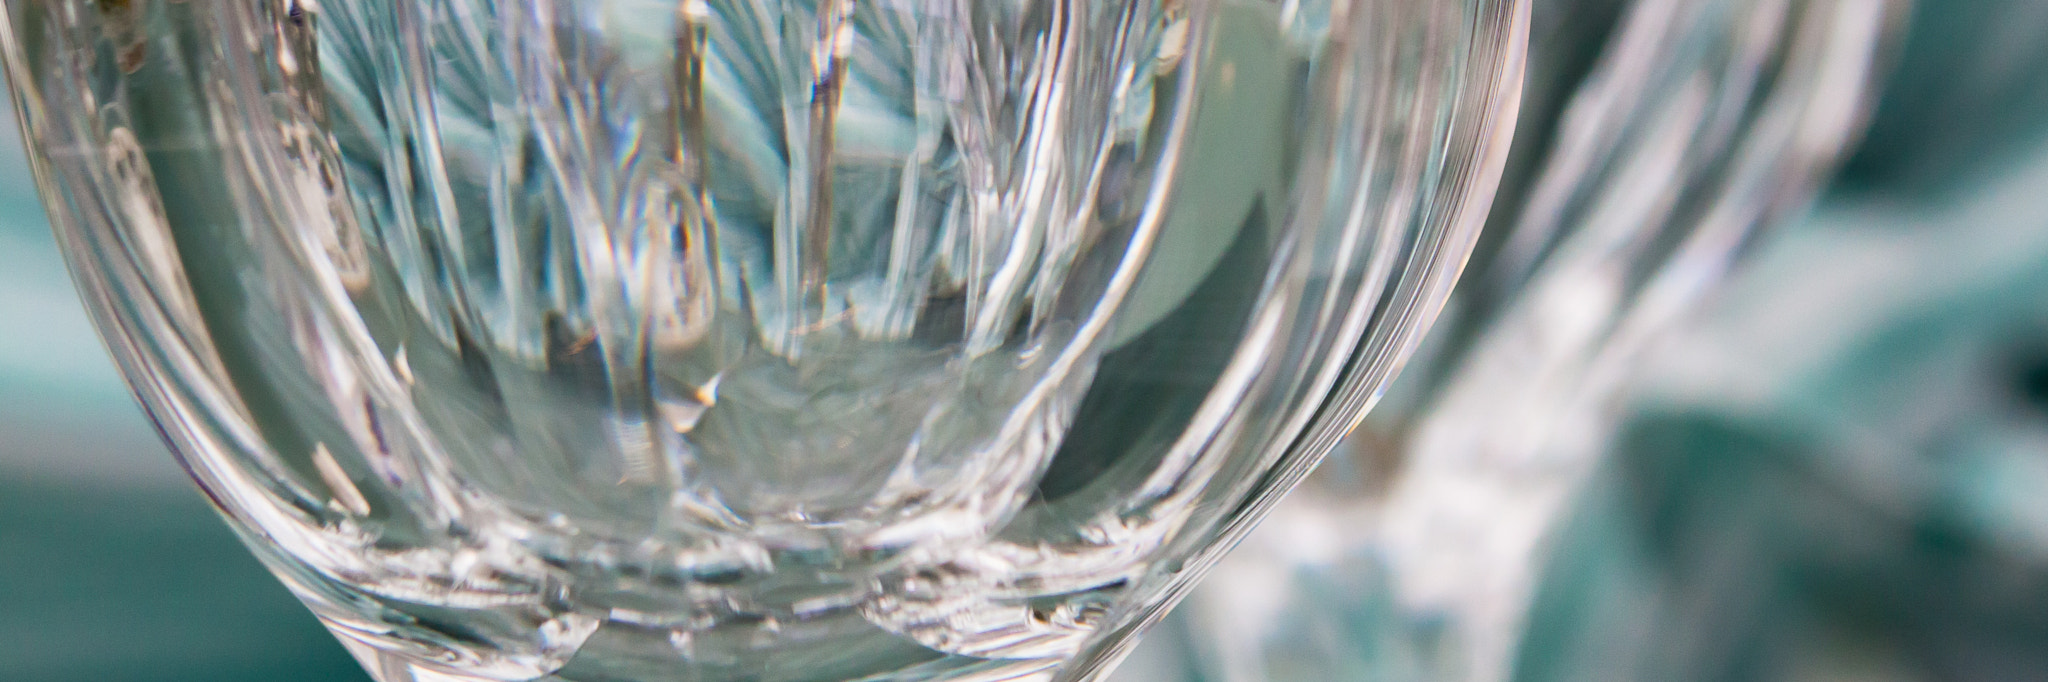 Photograph Glasses by David Arthur on 500px